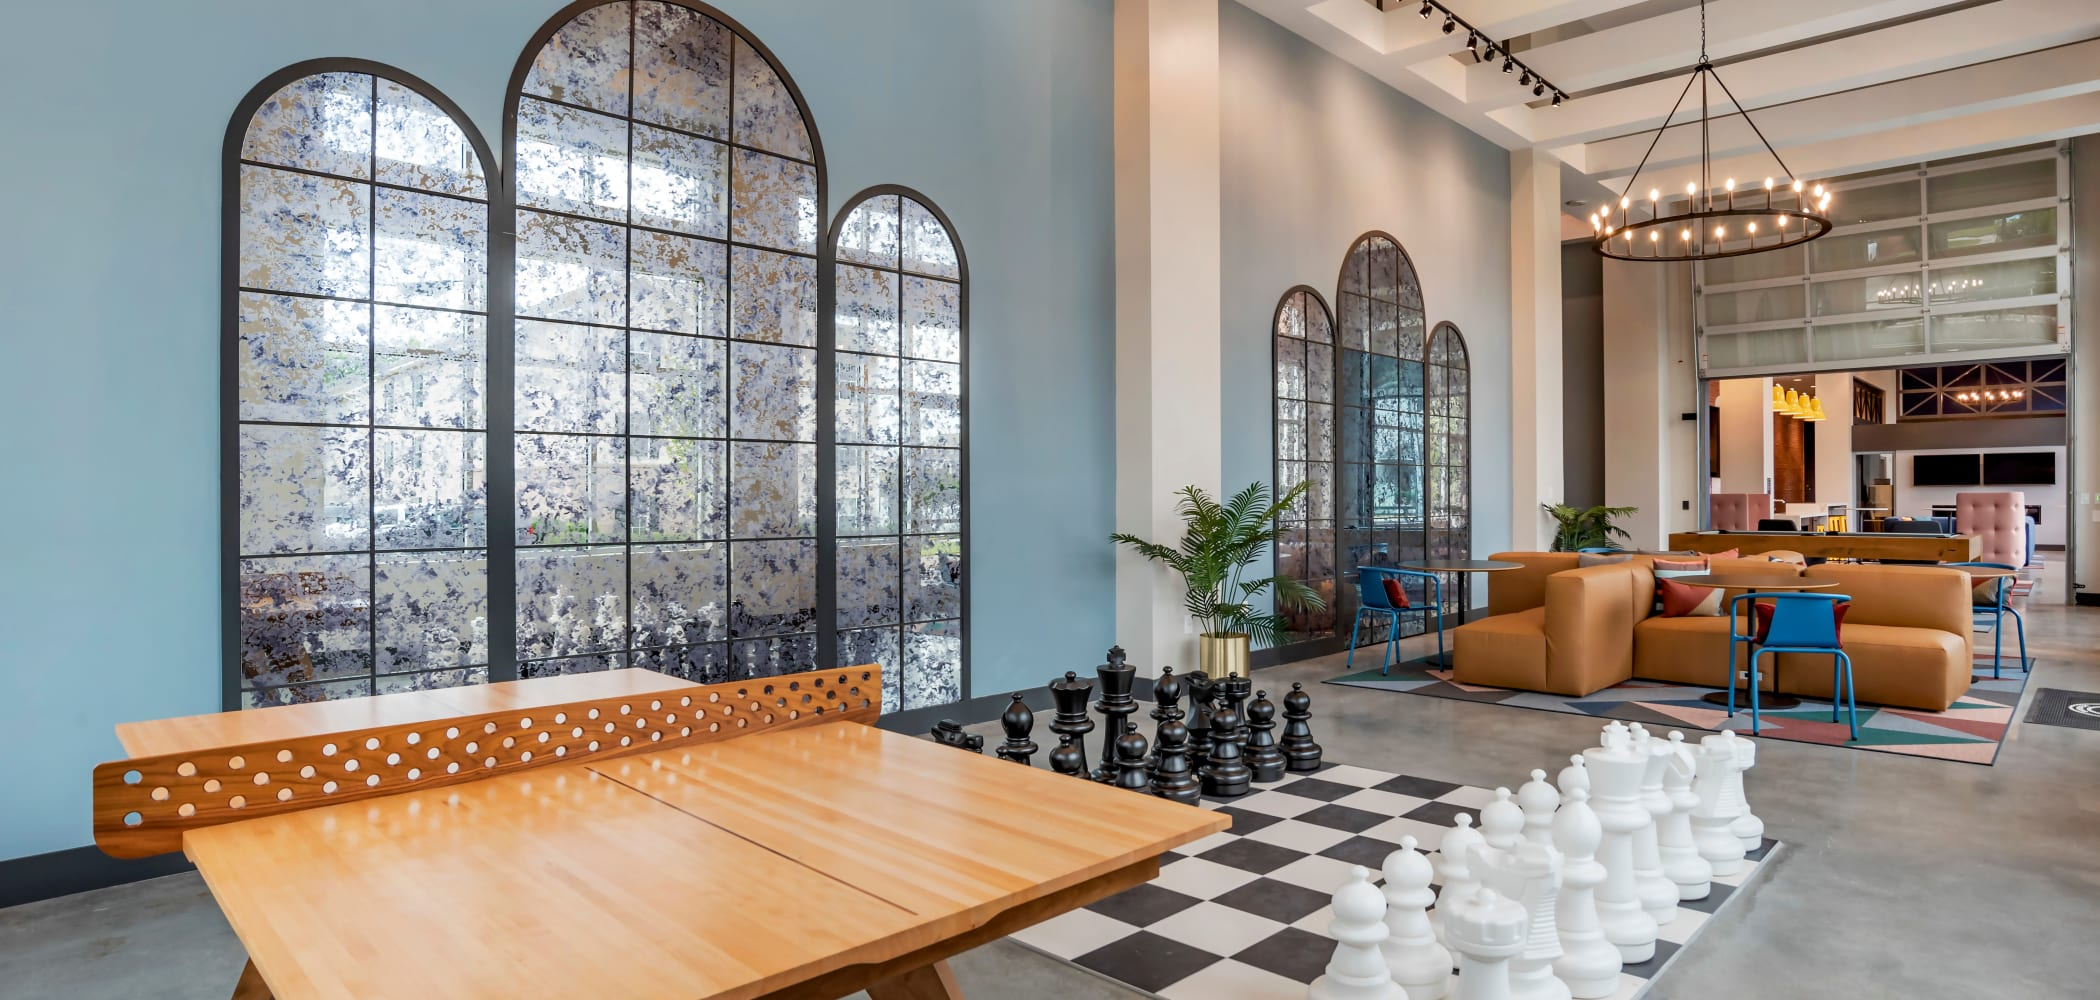 Clubhouse area with chairs, tables, and giant chess at UNCOMMON Auburn in Auburn, Alabama